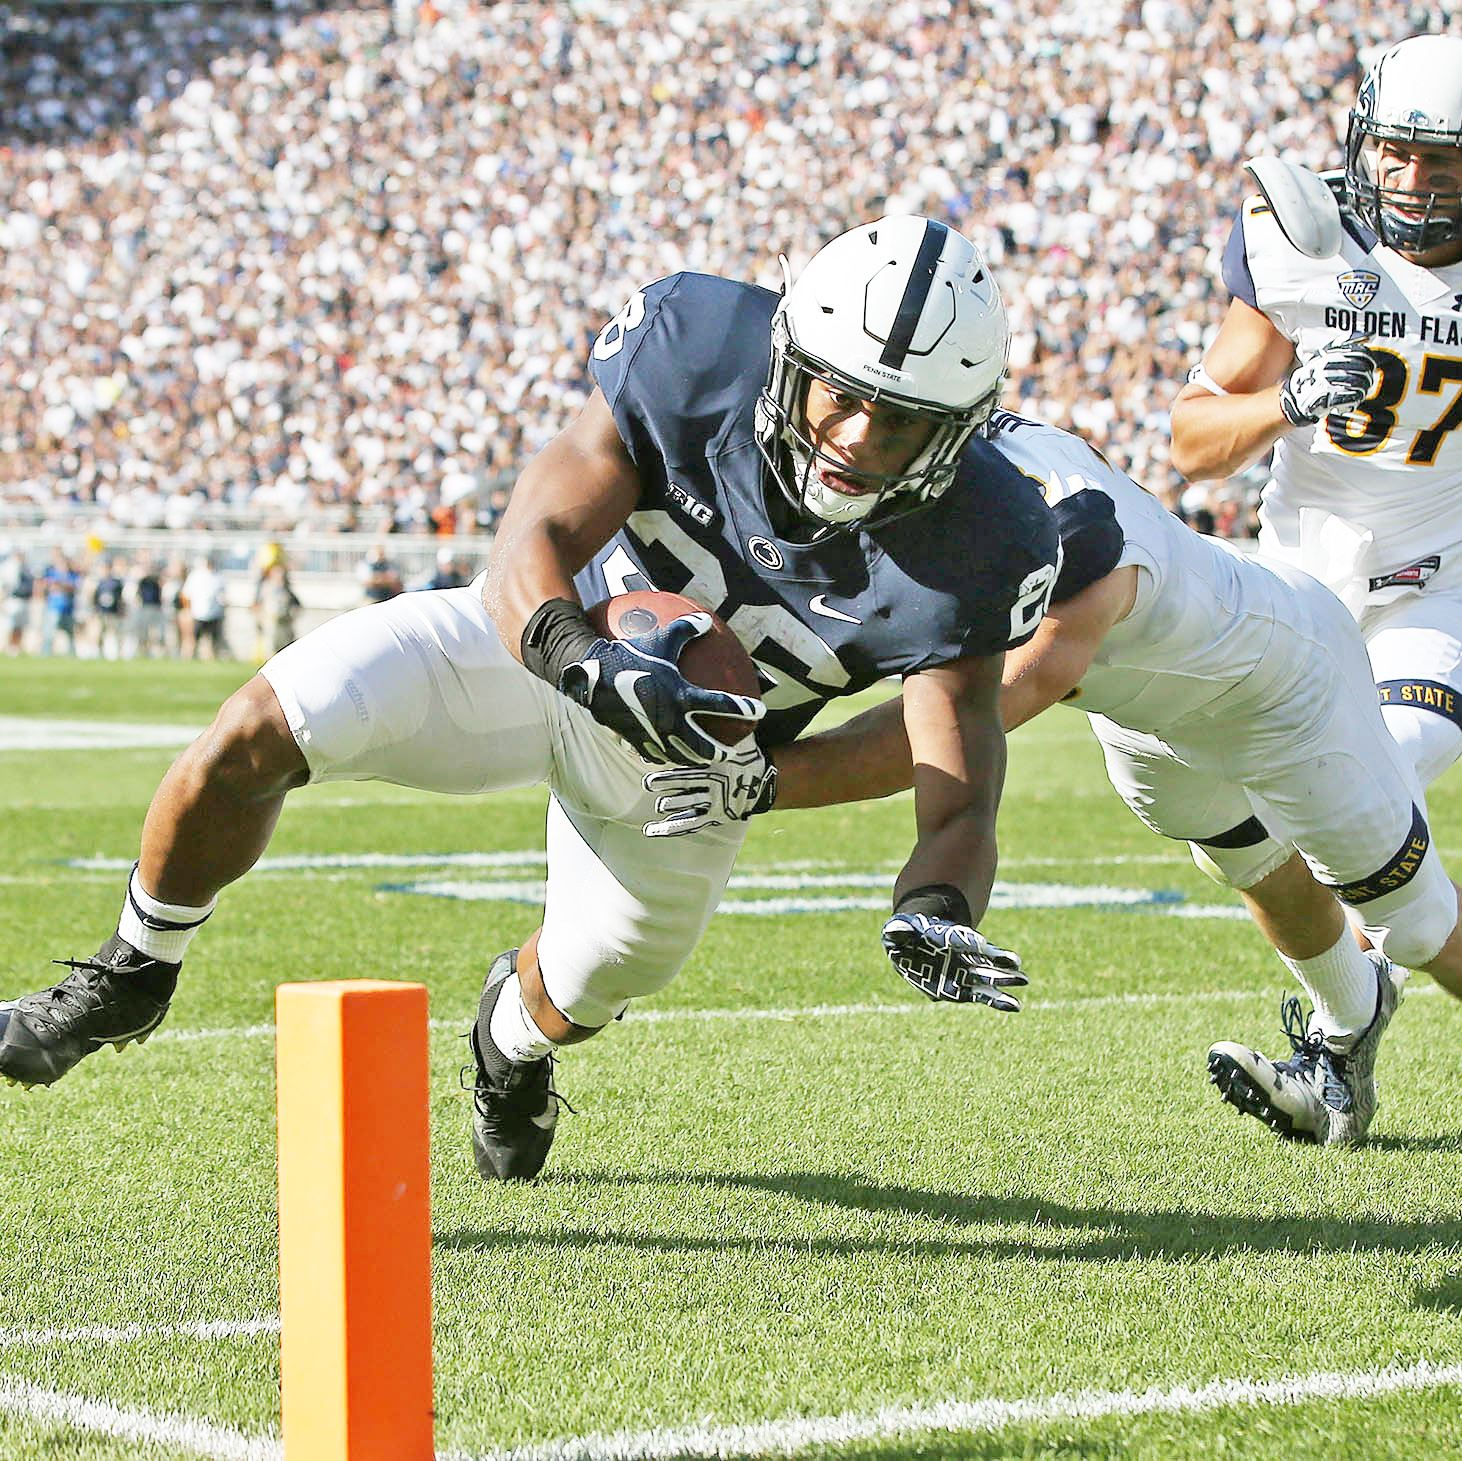 Penn State races to win over Purdue behind Saquon Barkley